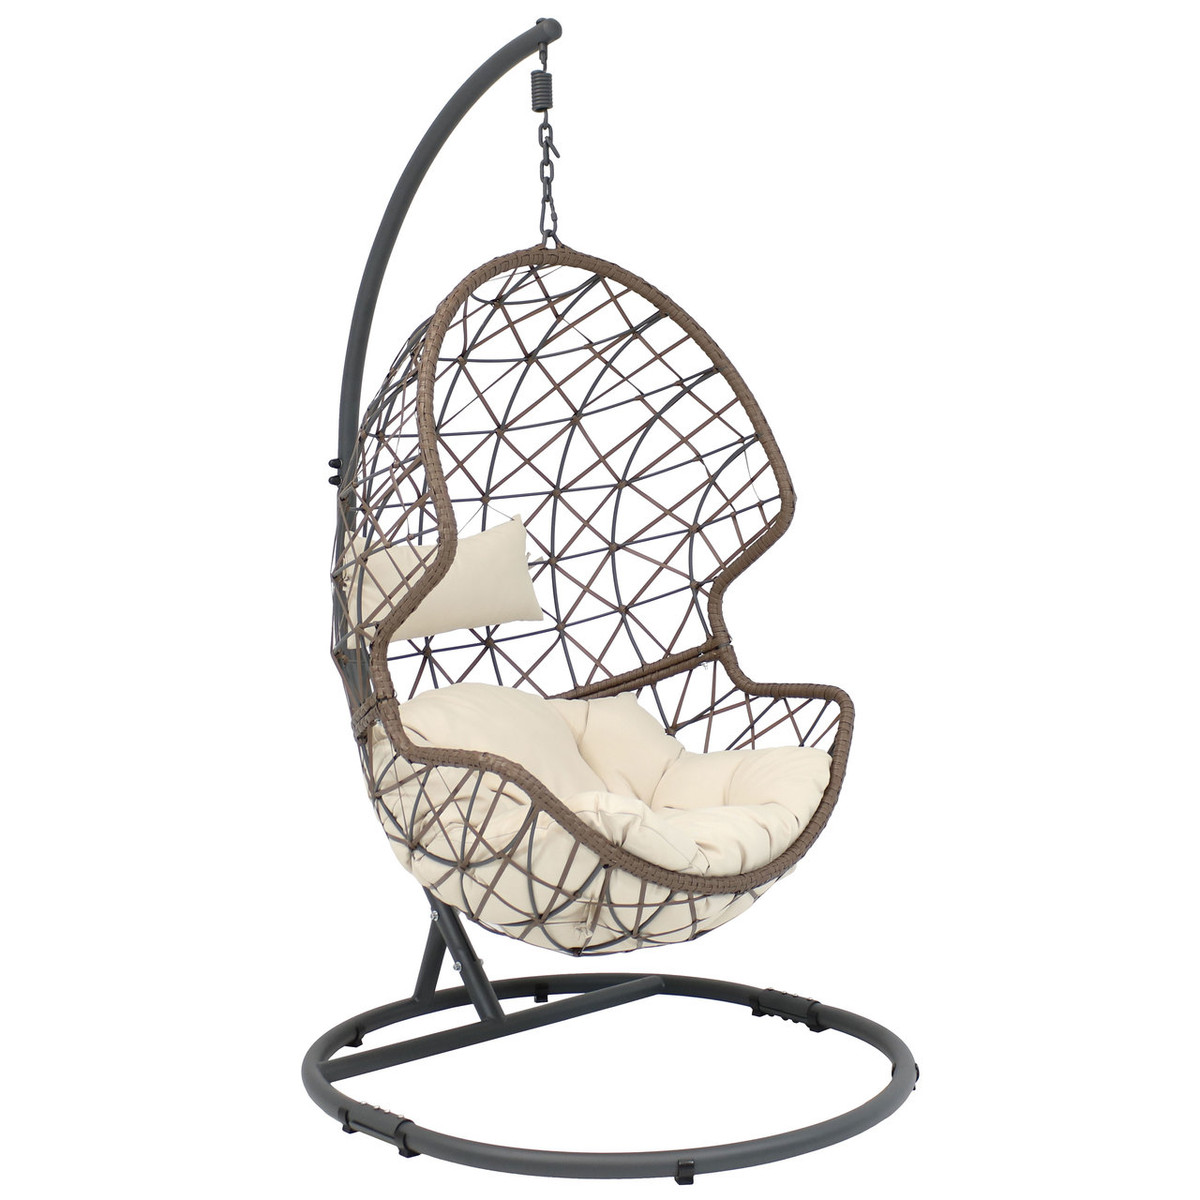 Brand-new Sunnydaze Danielle Hanging Egg Chair with Steel Stand Set, Resin  SE56